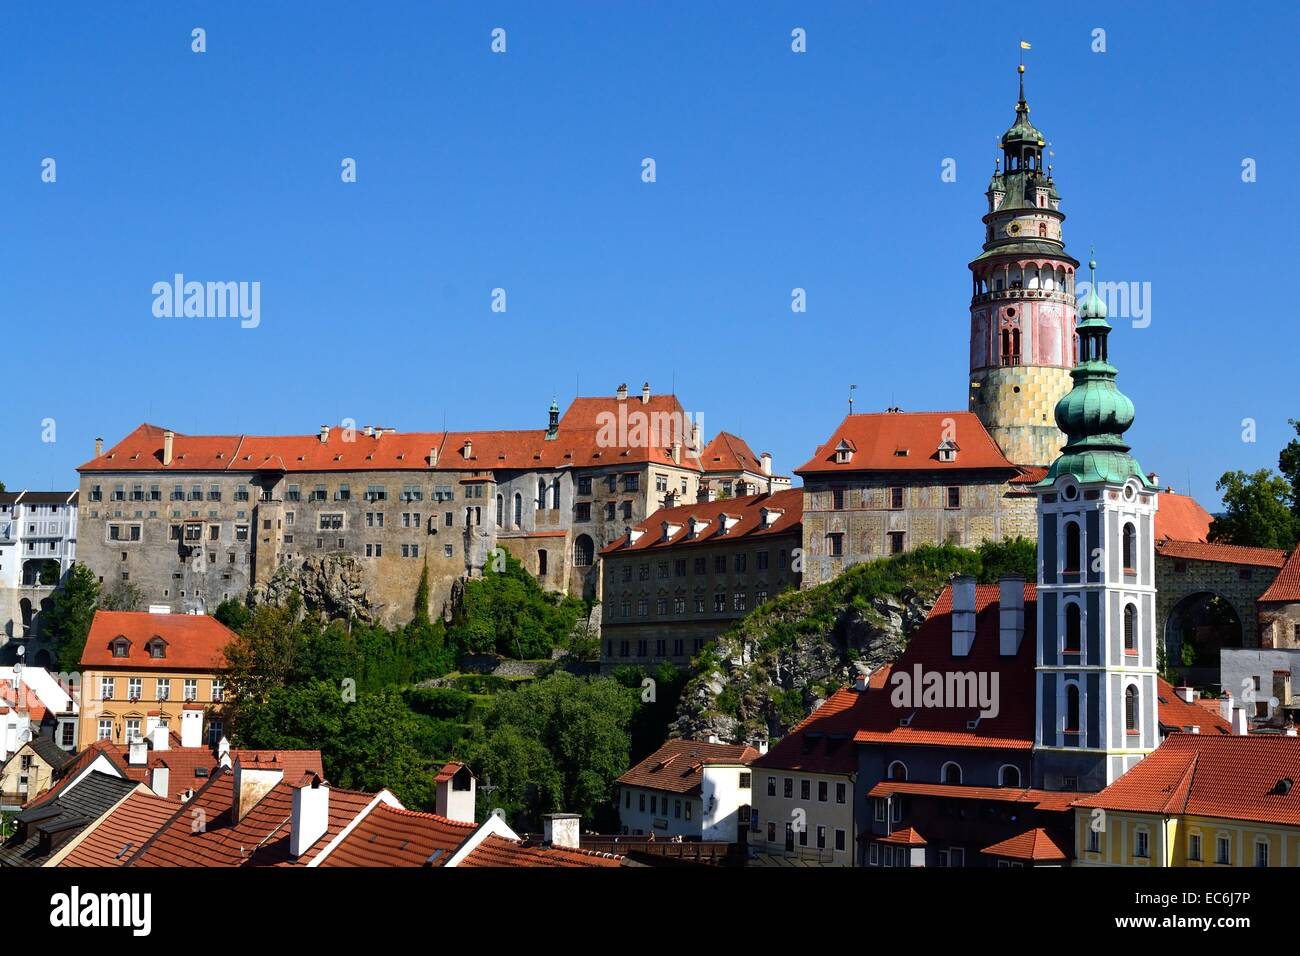 imposing castle in Cesky Krumlov - Stock Image